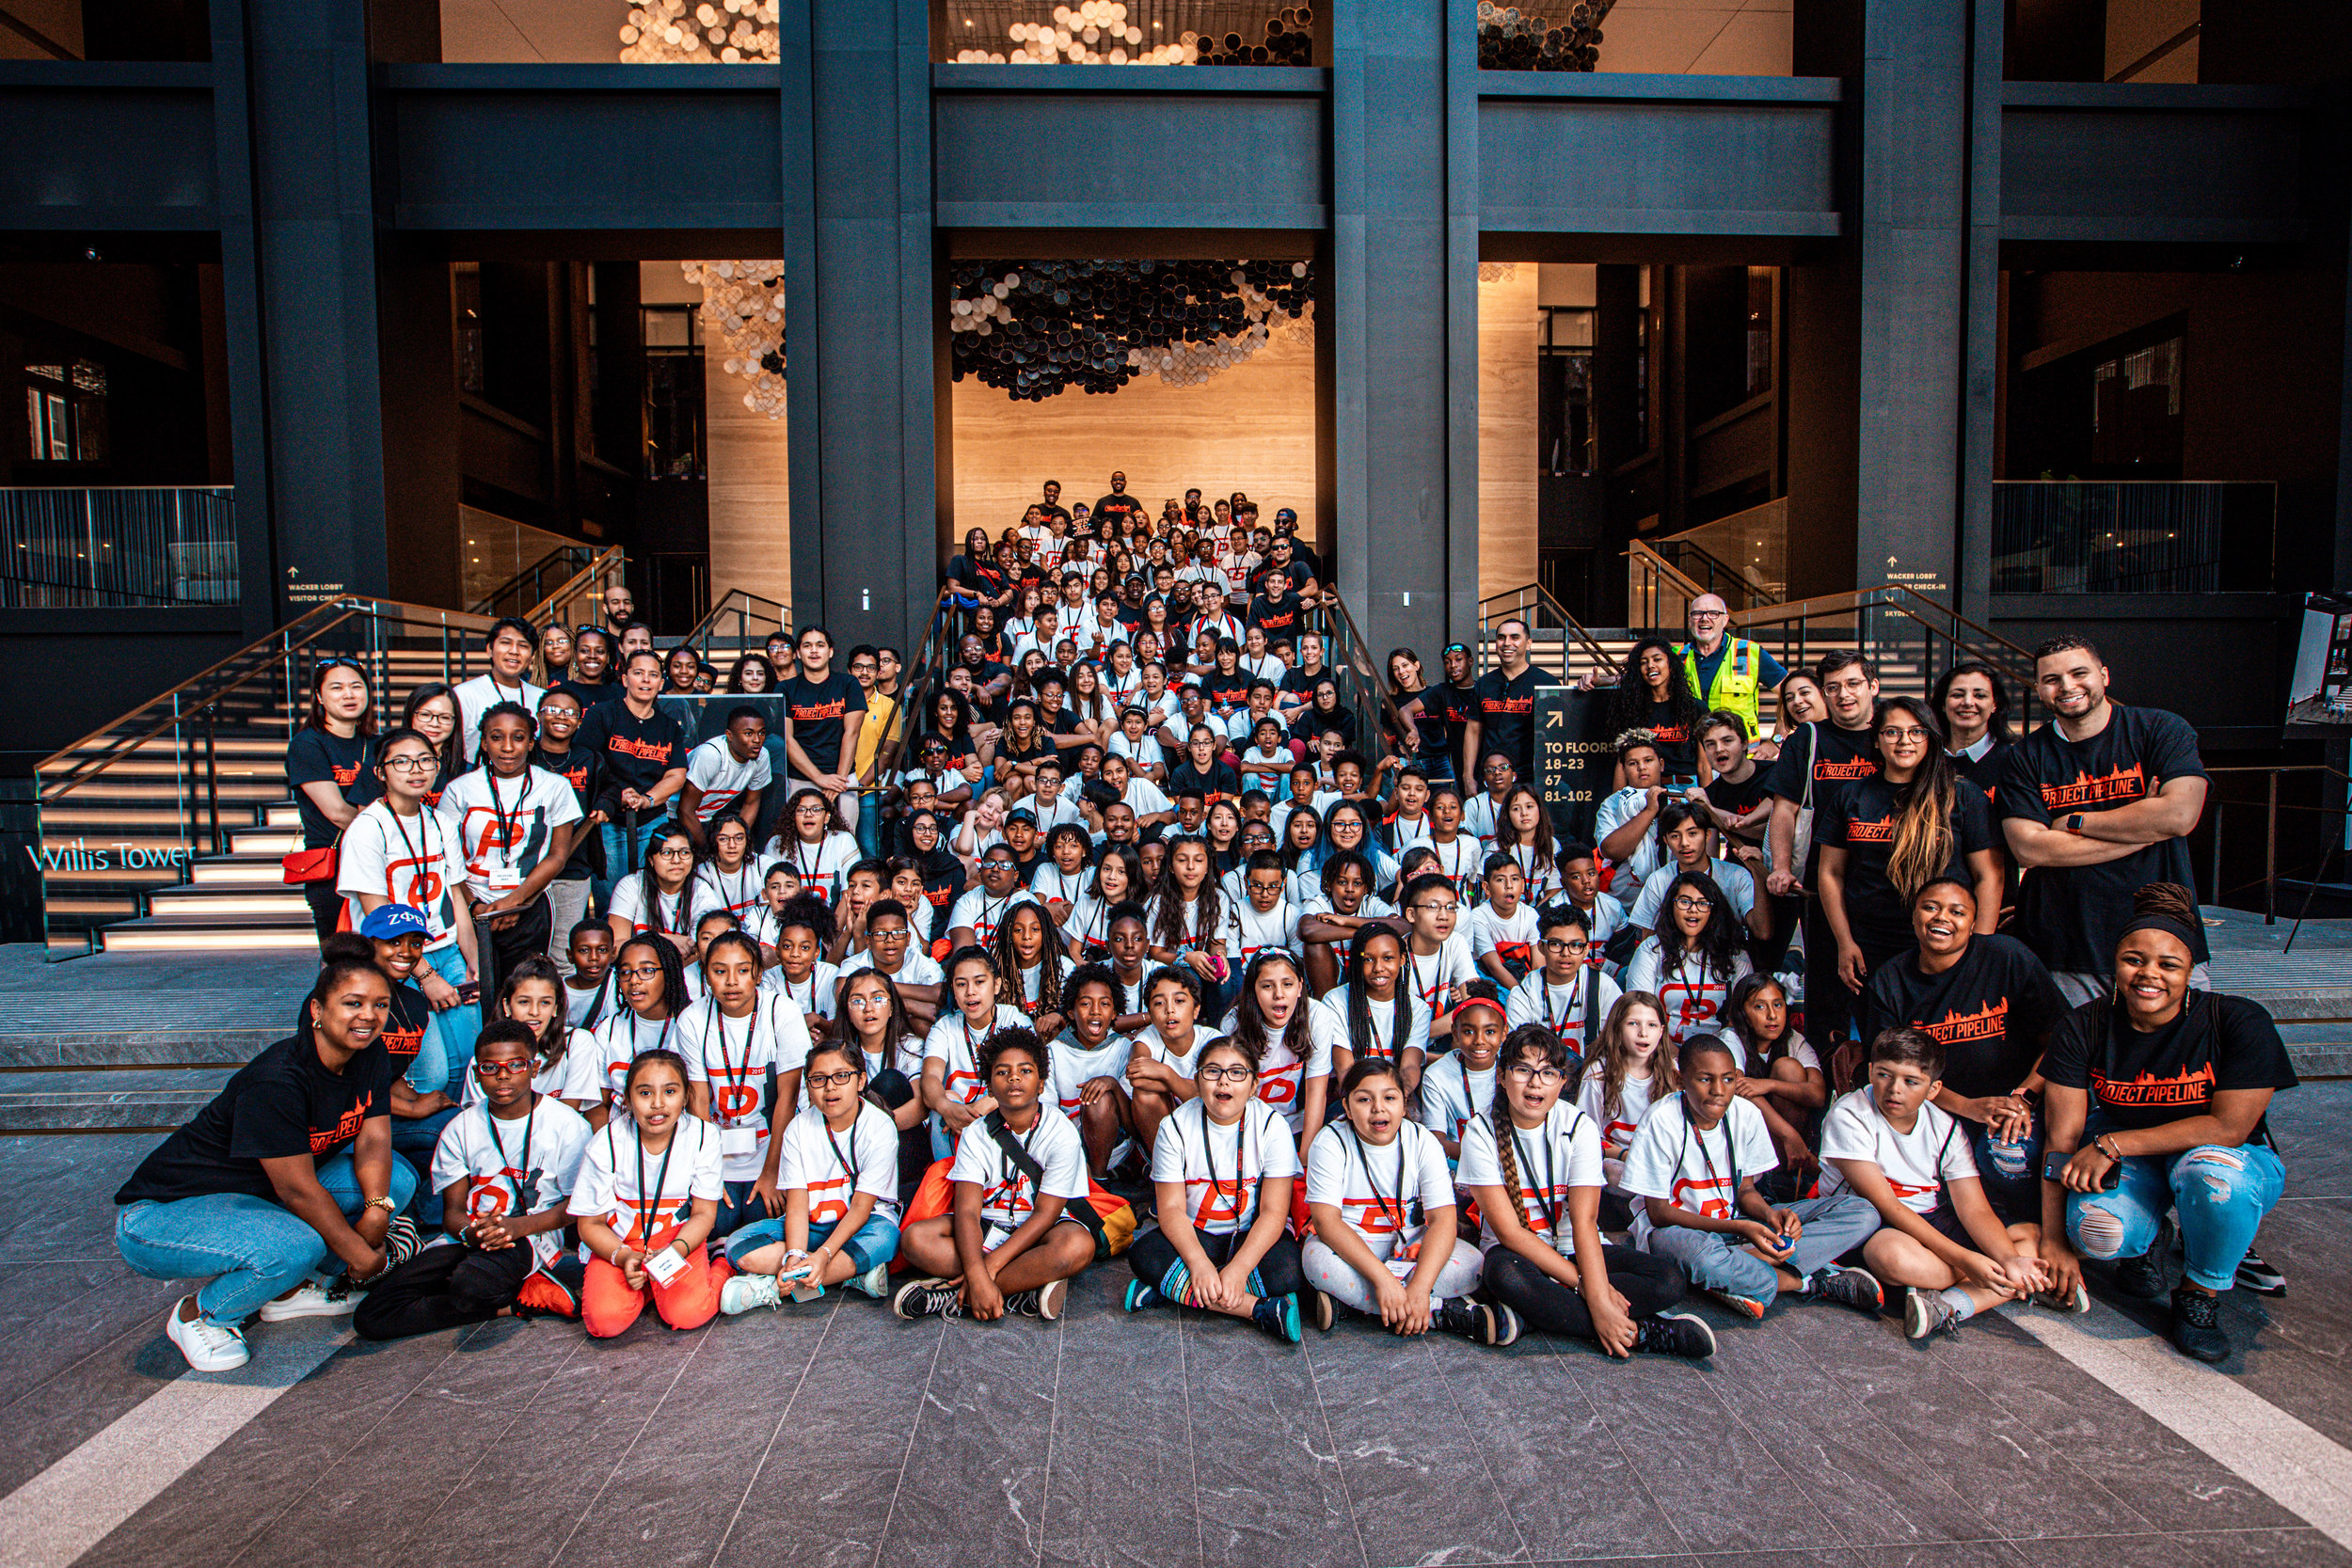 2019 Project Pipeline Summer Camp - Willis Tower Visit